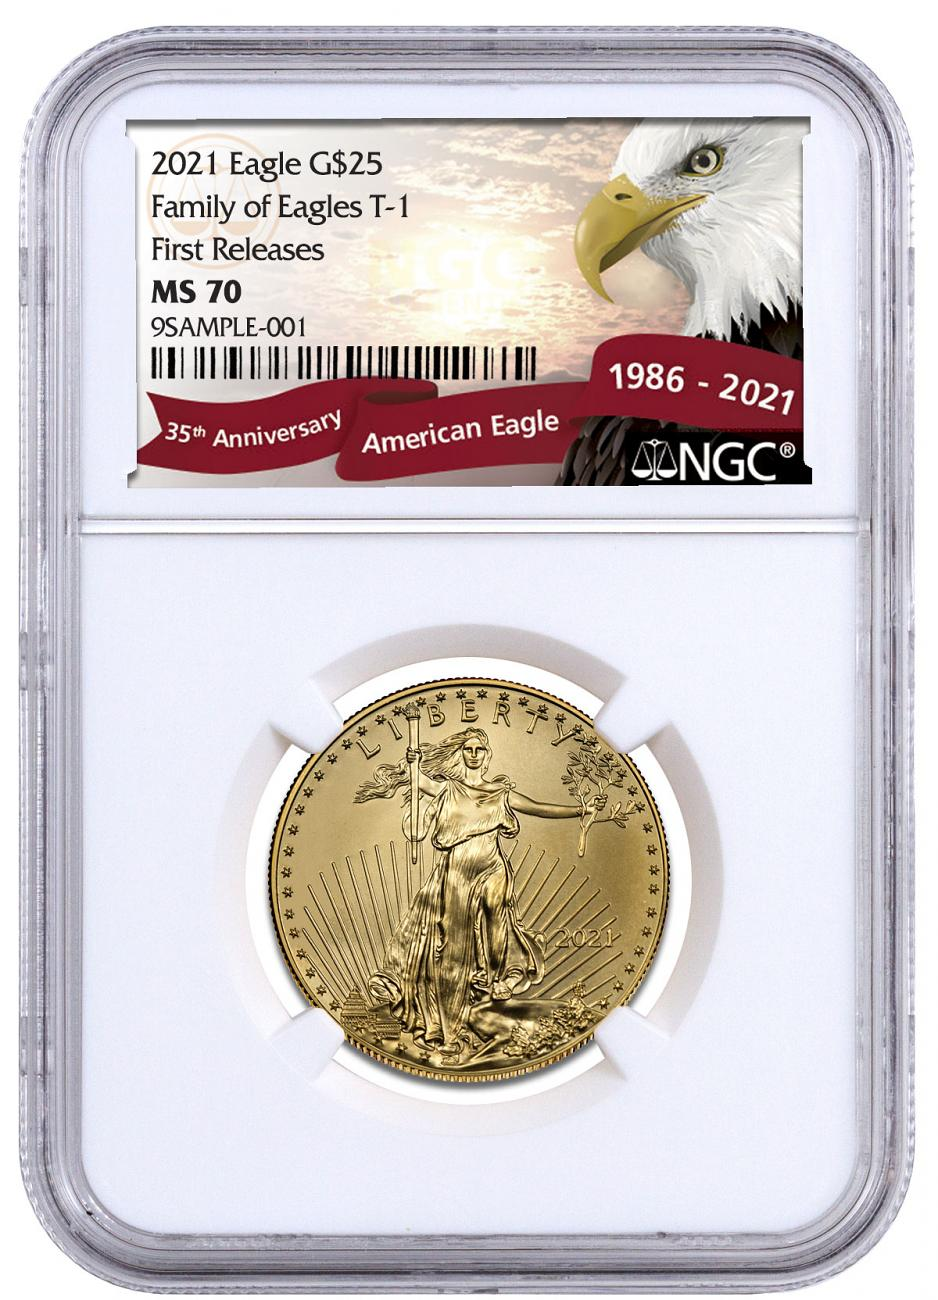 2021 1/2 oz Gold American Eagle T-1 $25 Coin NGC MS70 FR Exclusive Eagle Label